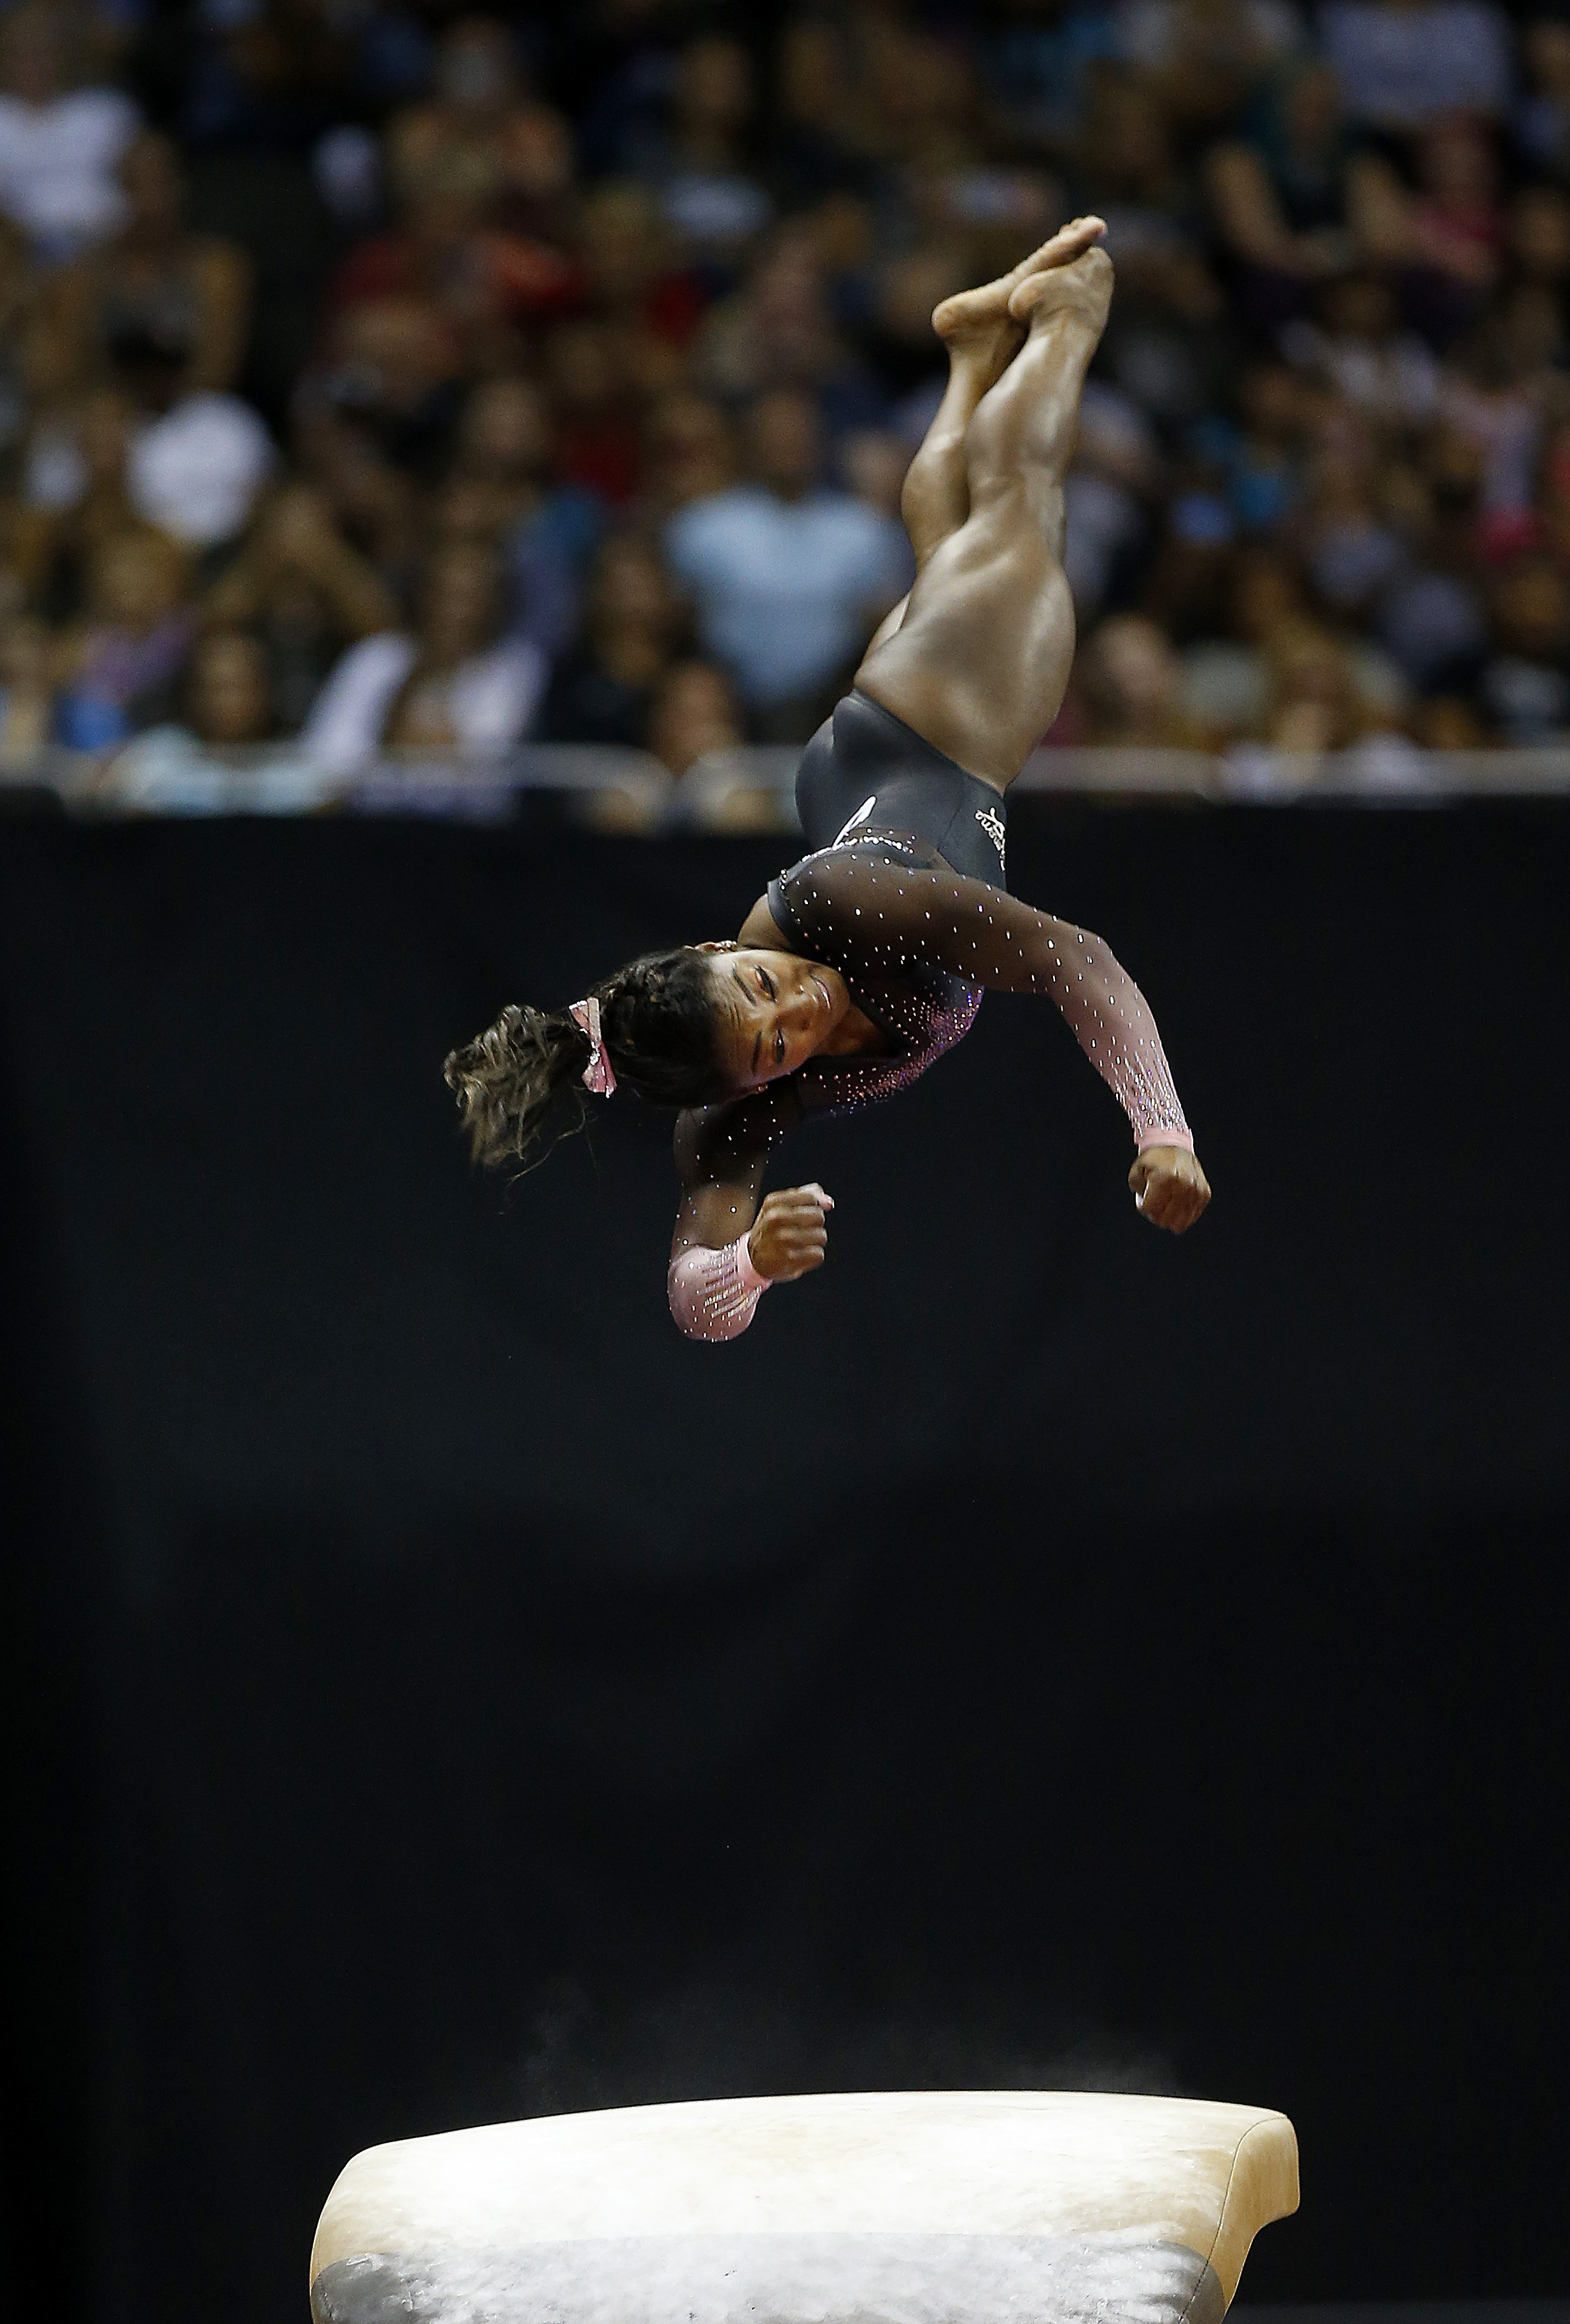 Simone Biles competes on the vault during the Women's Senior competition of the 2019 U.S. Gymnastics Championships at the Sprint Center on August 11, 2019 in Kansas City, Missouri   Photo: Getty Images